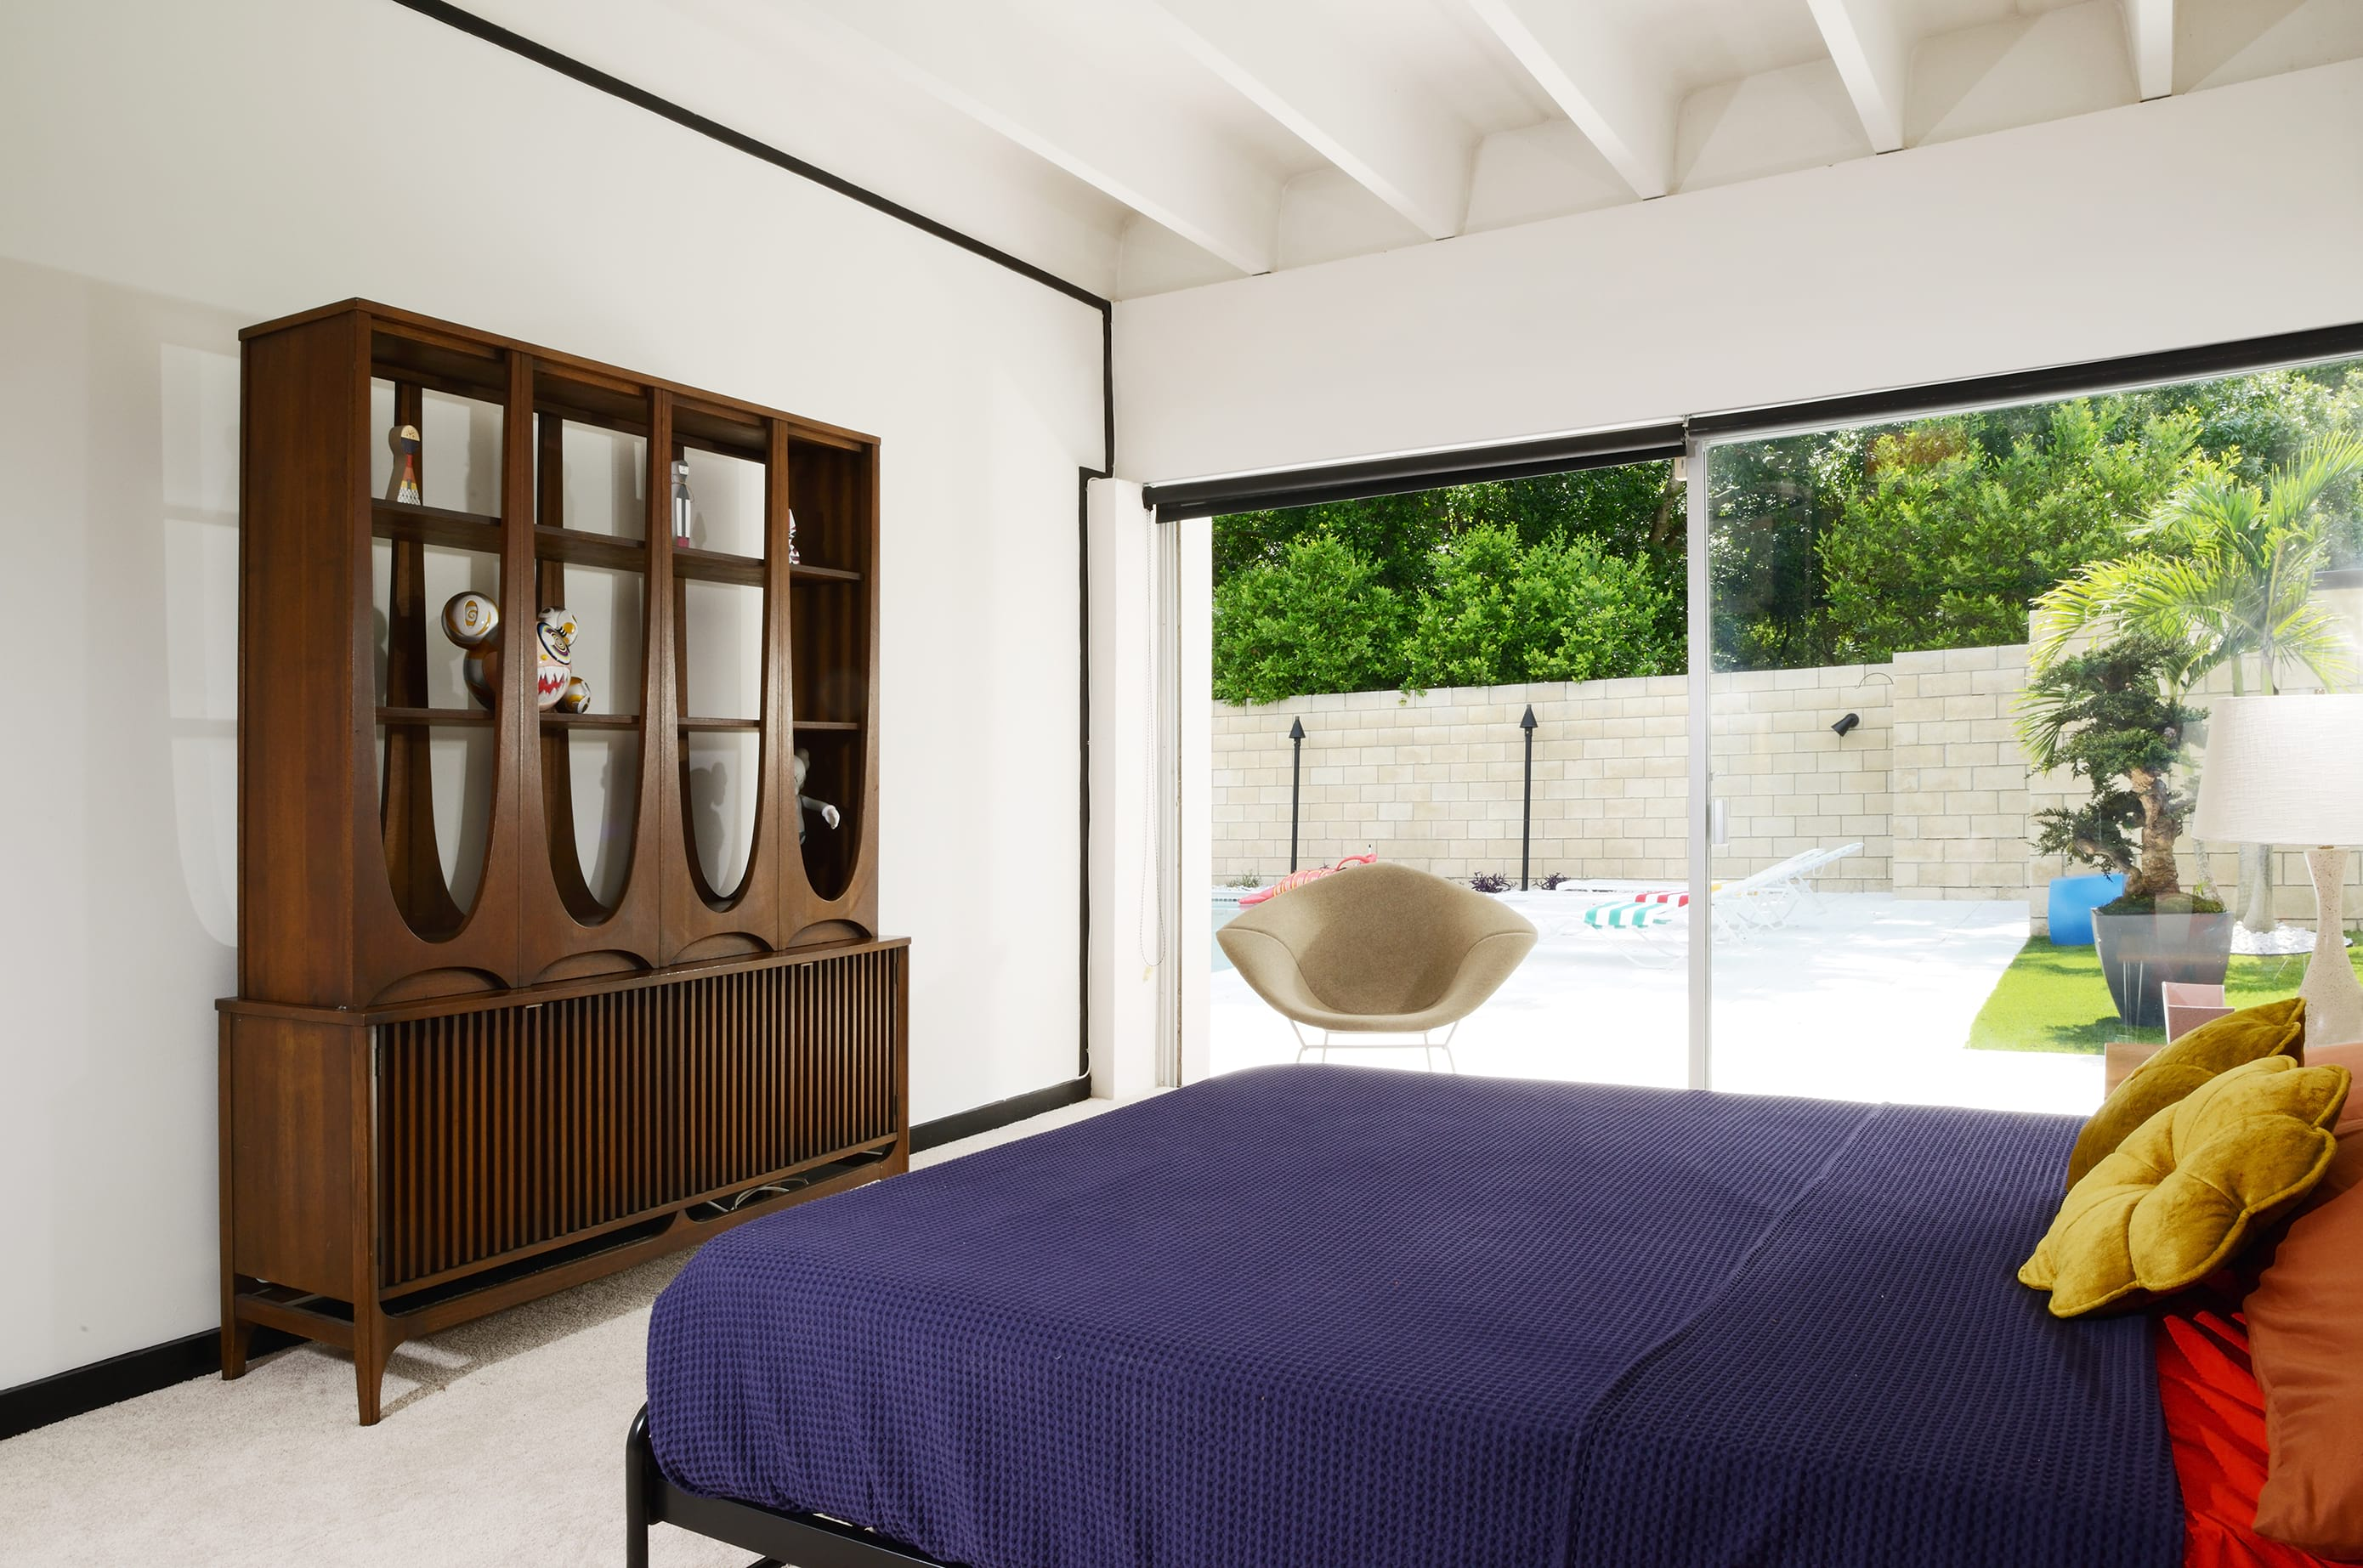 Christopher florentino - midcentury home Florida - bedroom